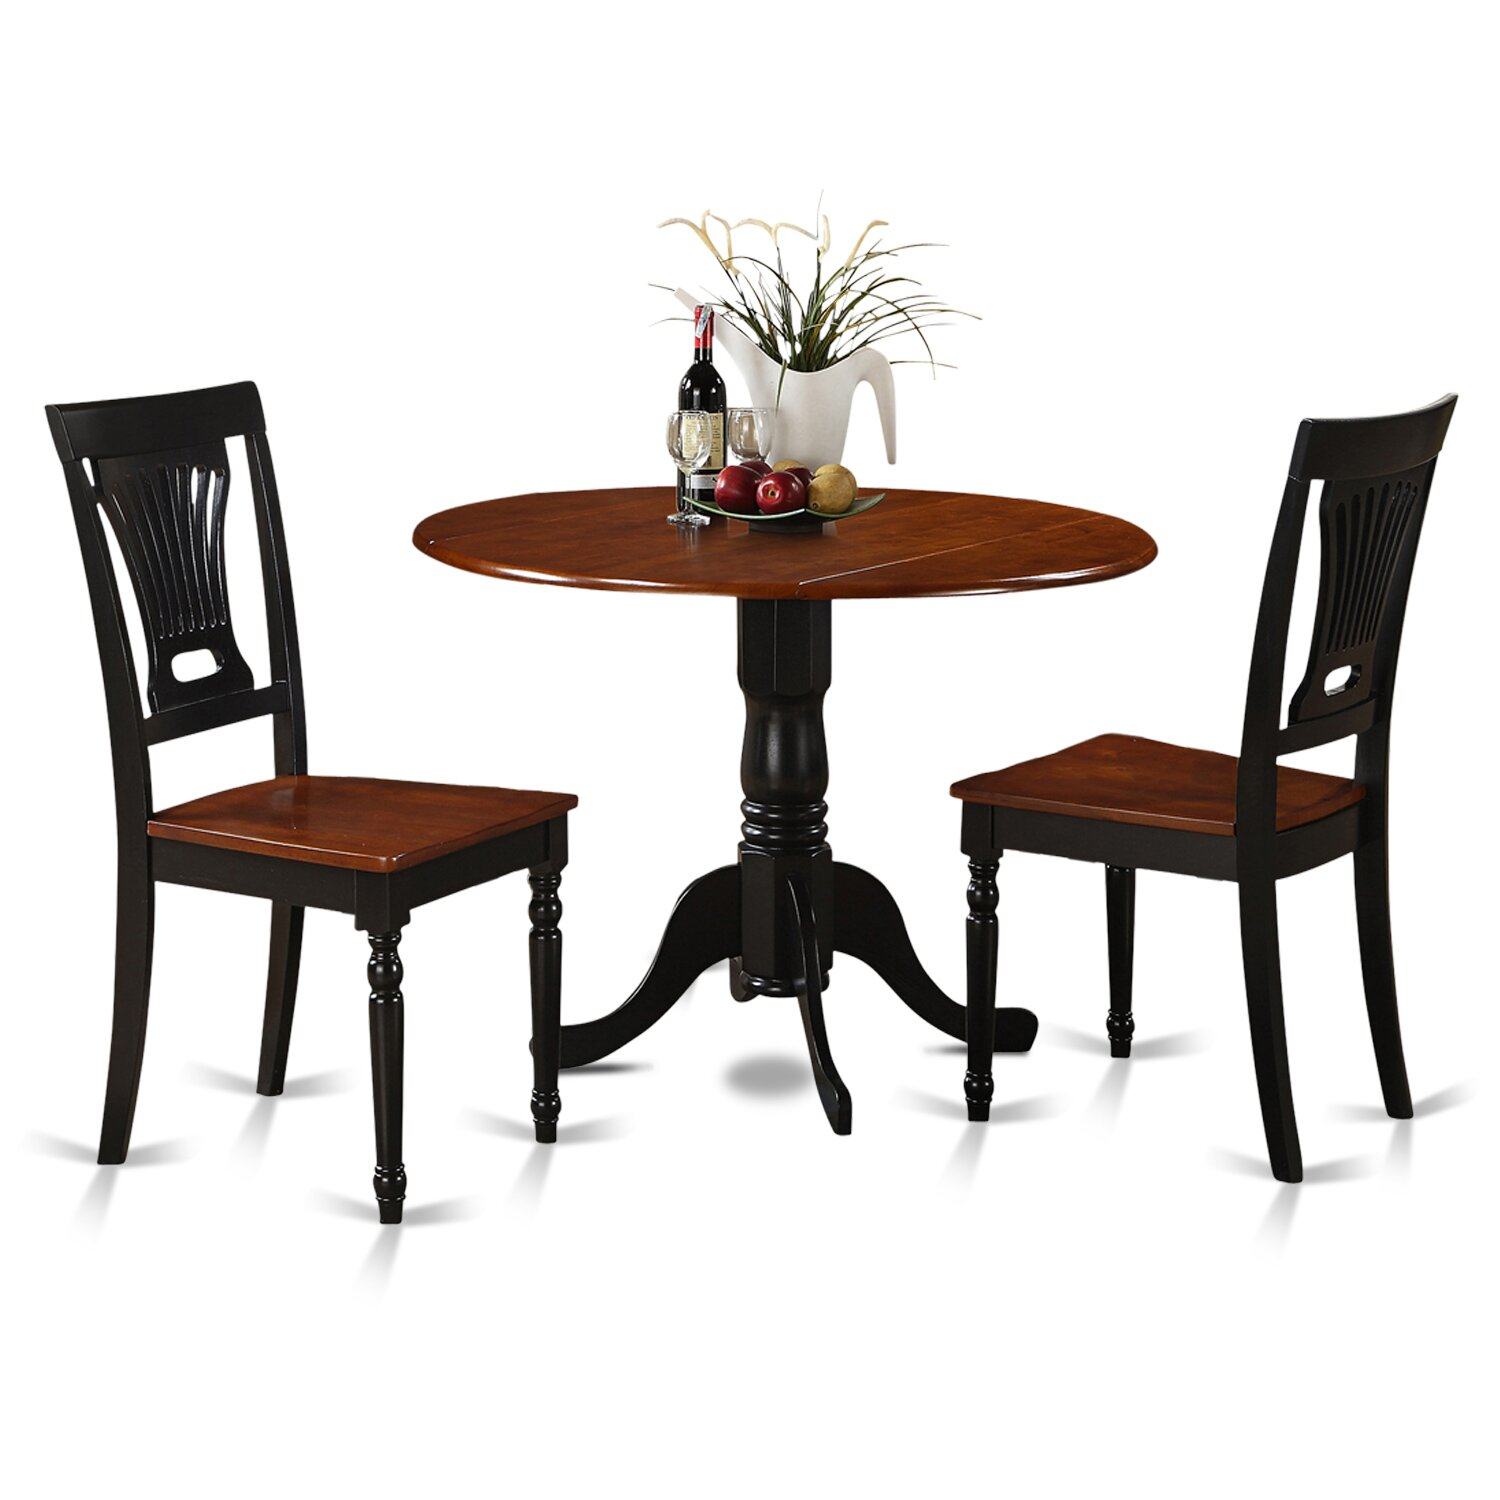 Wooden importers dublin 3 piece dining set reviews wayfair for Small table and stool set